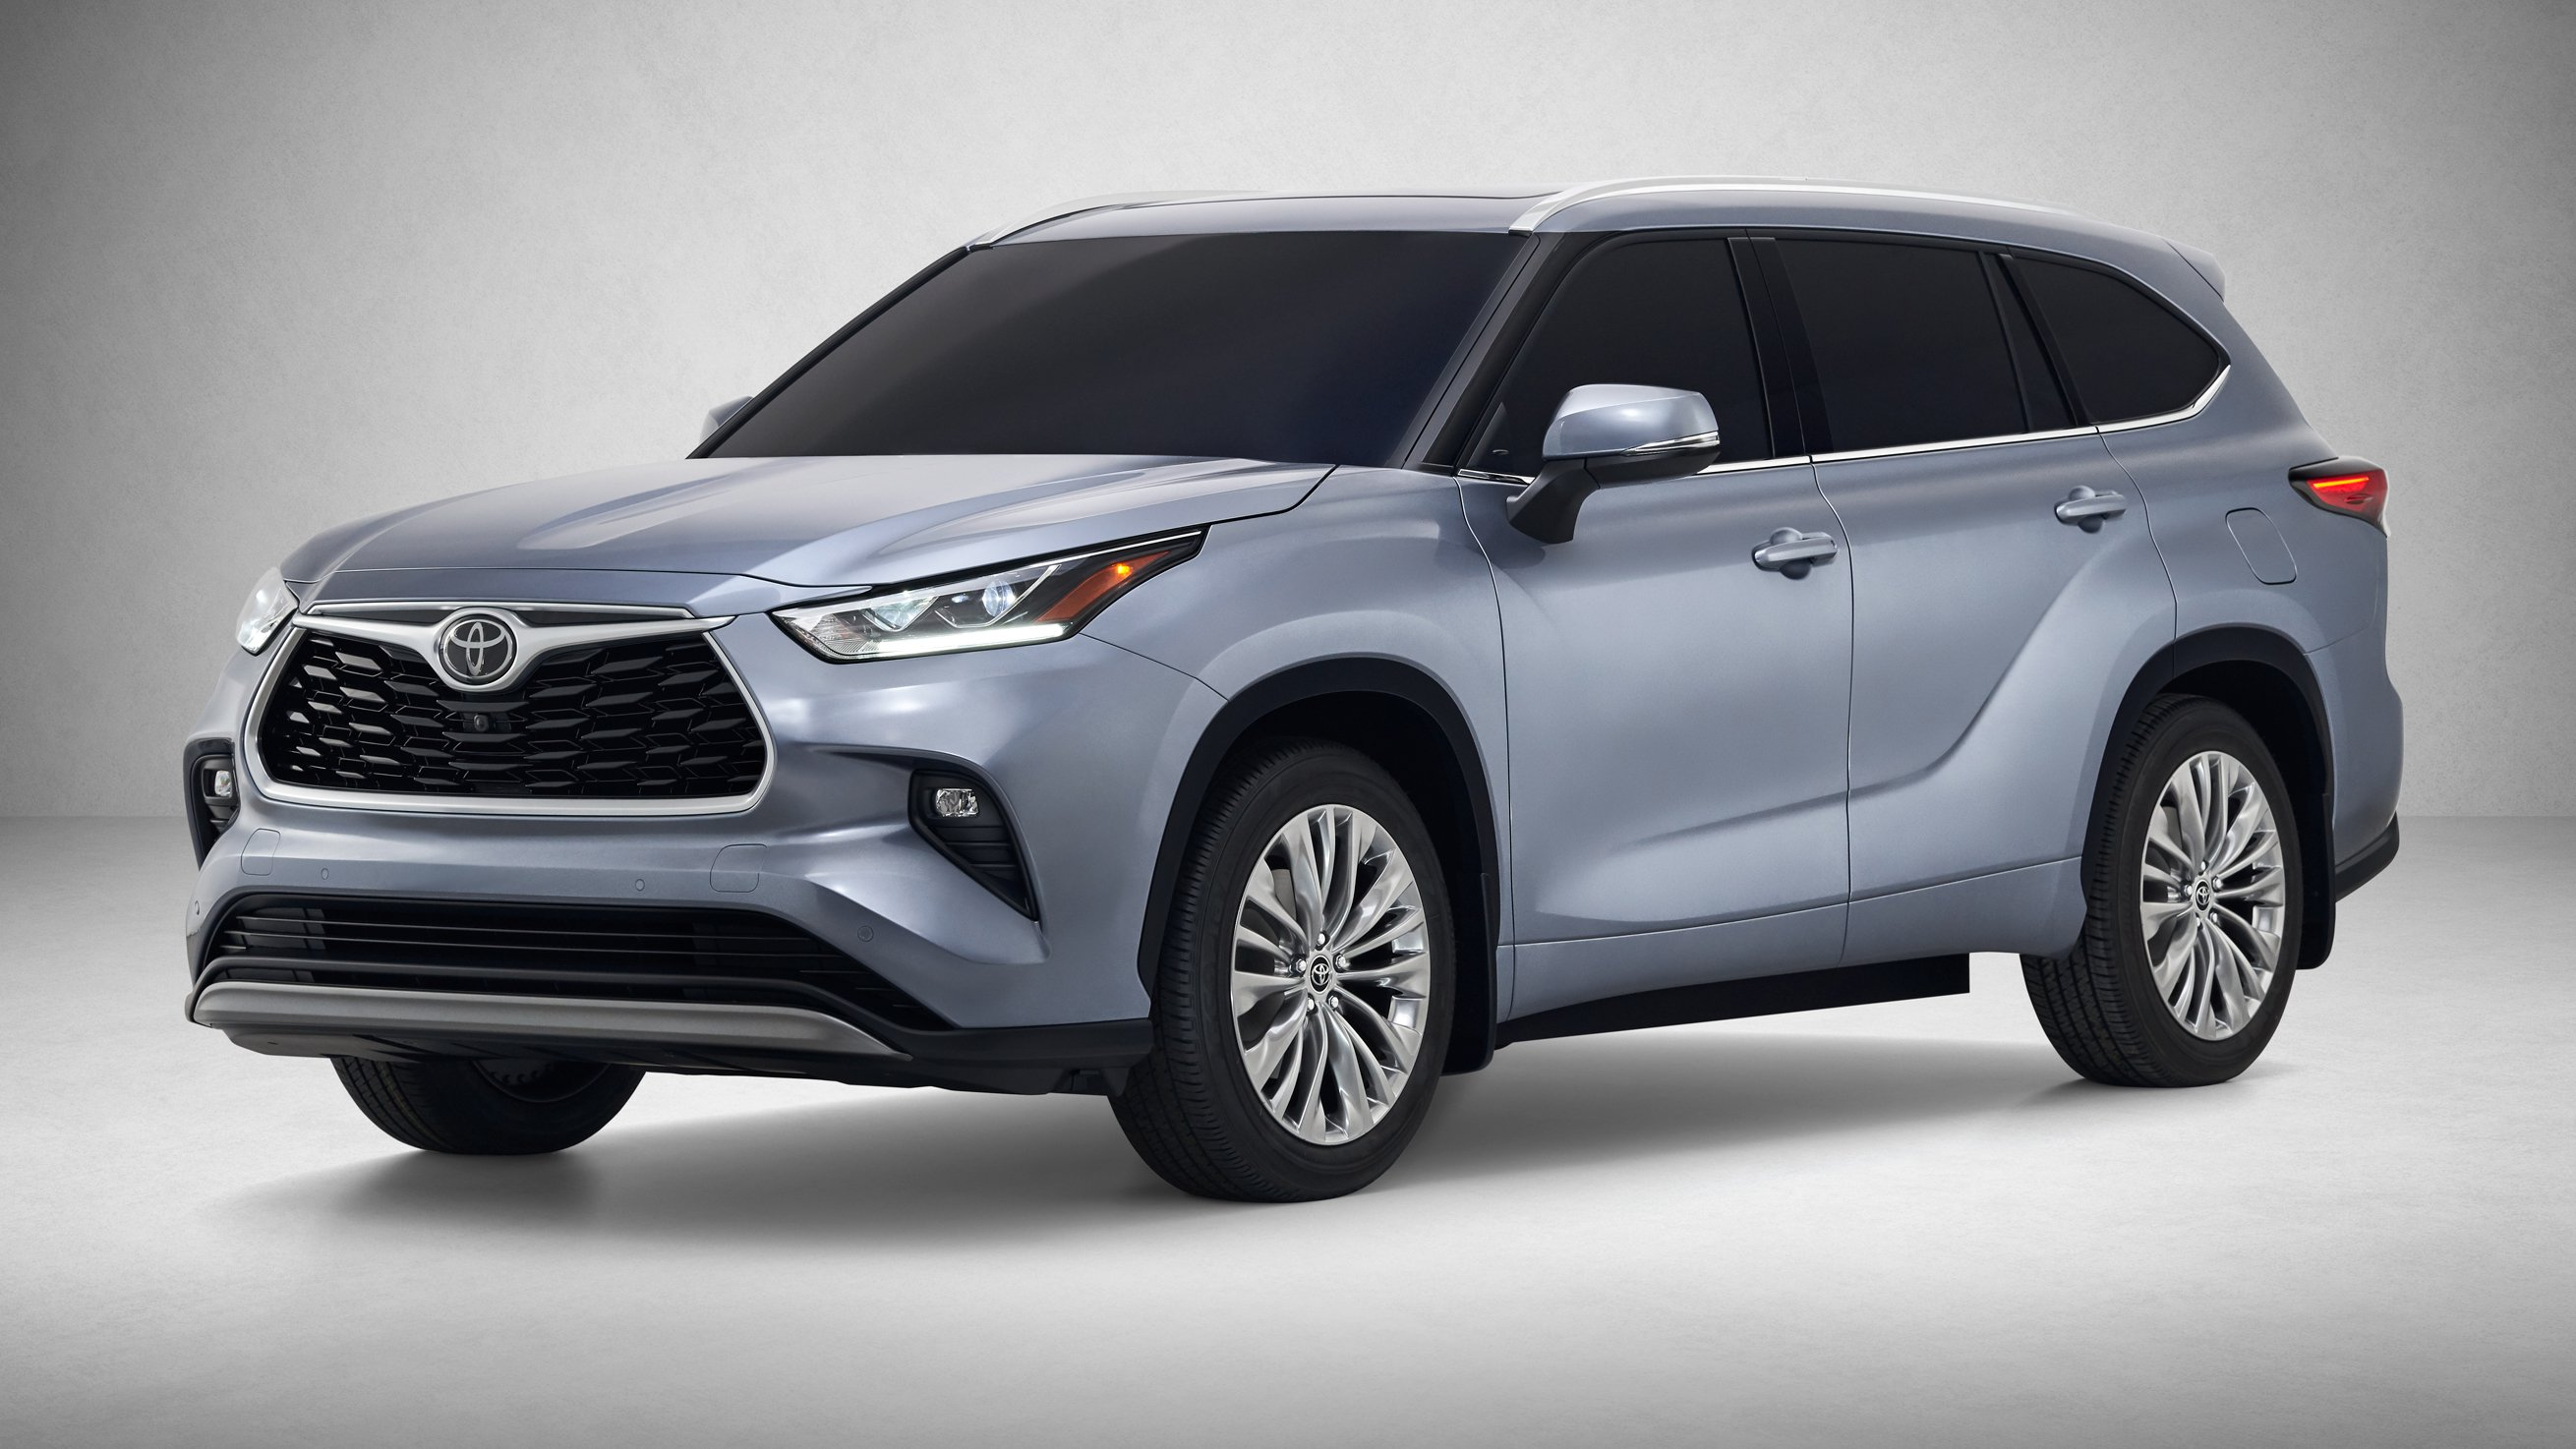 2020 Toyota Kluger Unveiled Australia To Get Hybrid Power Caradvice